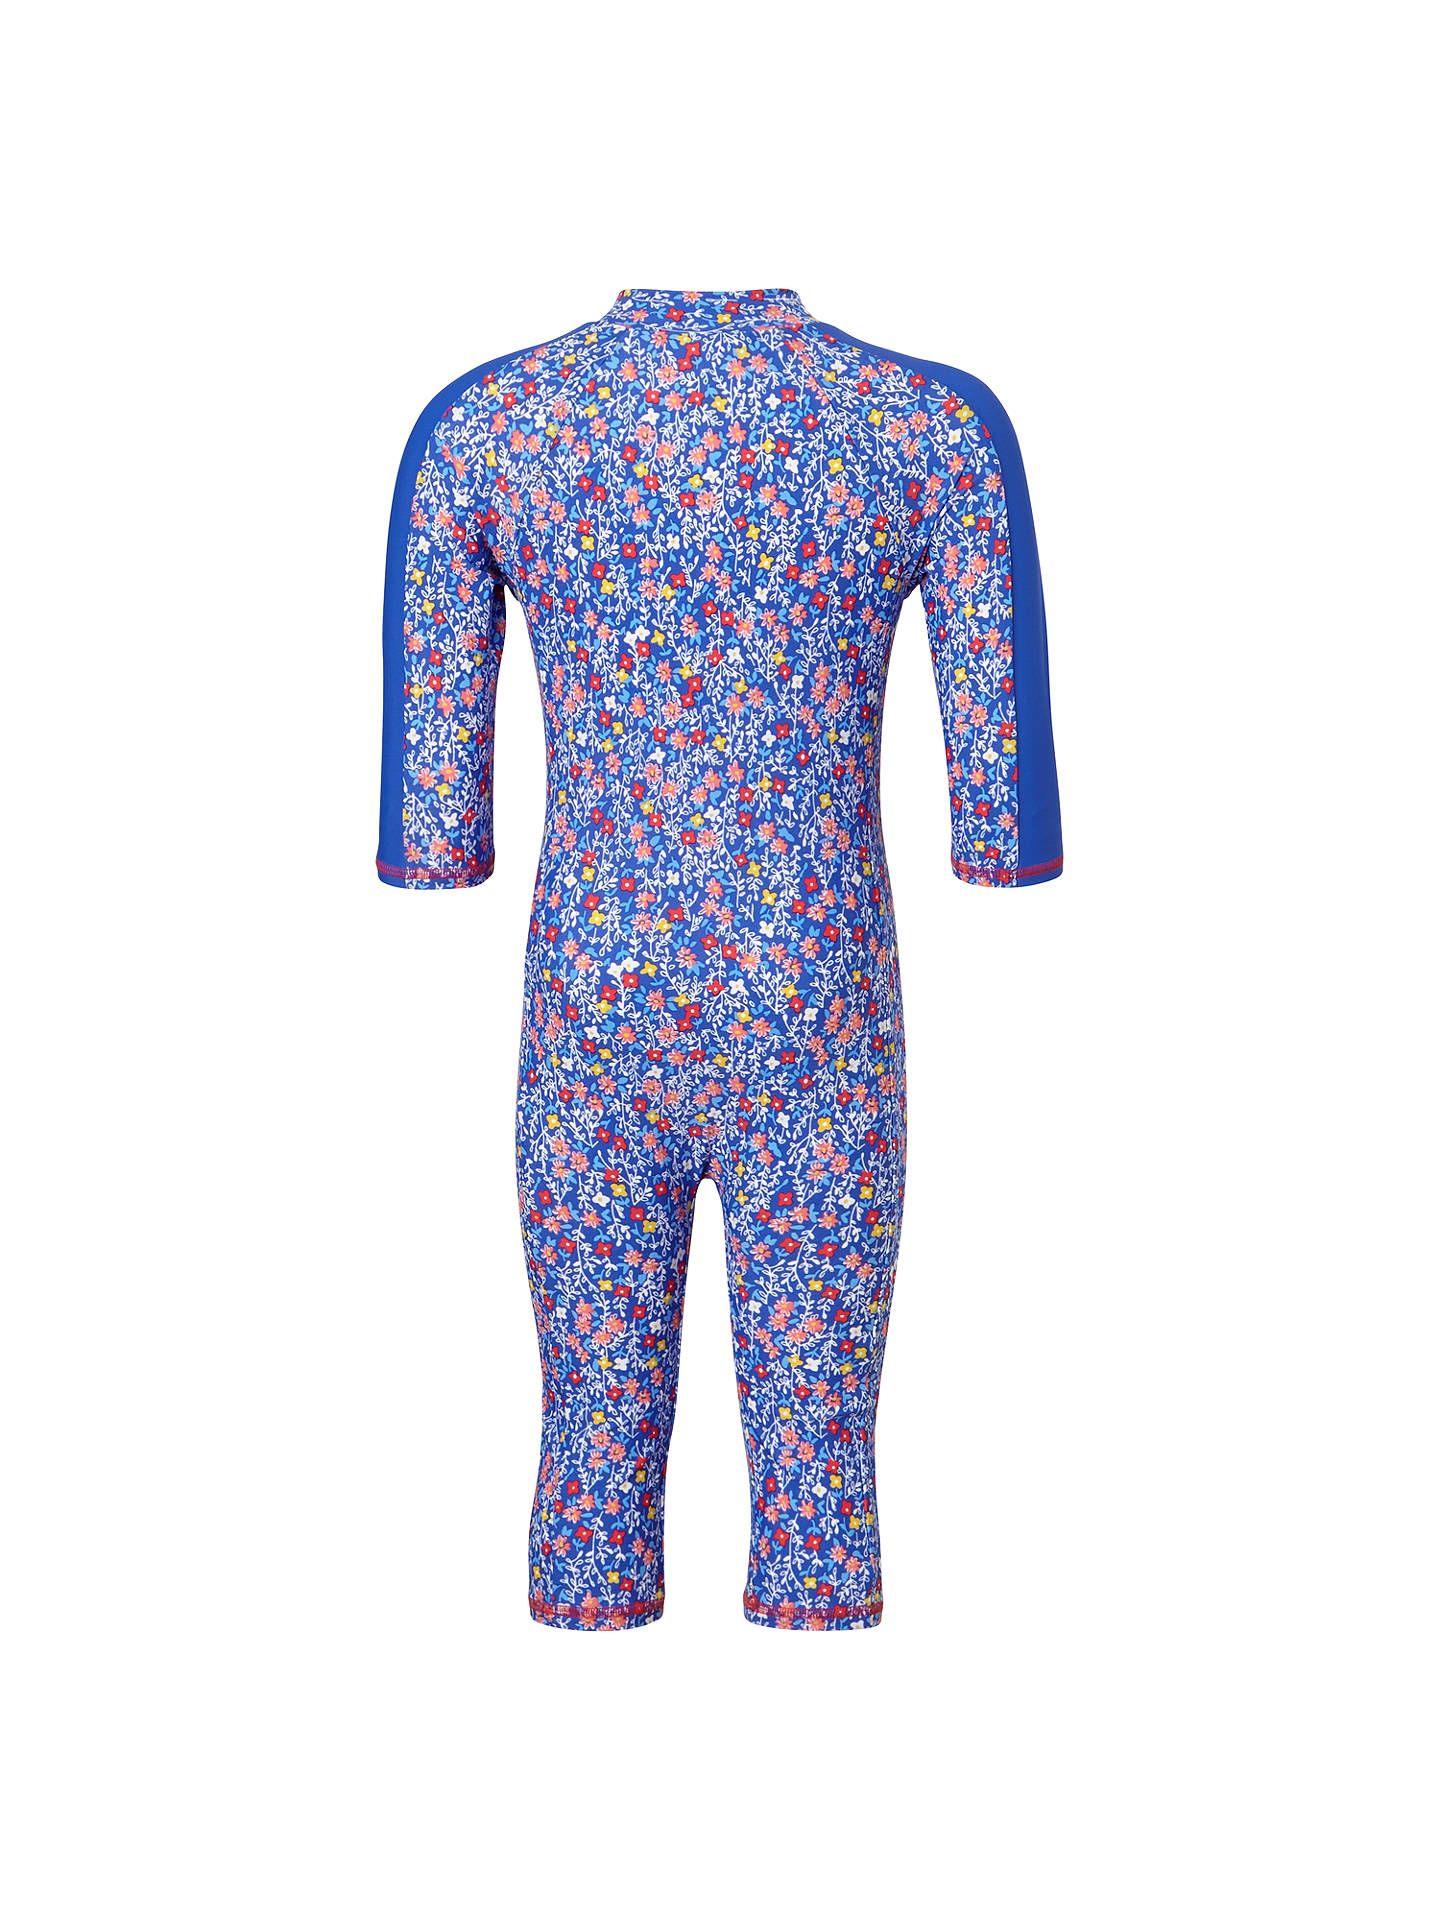 BuyJohn Lewis & Partners Girls' Micro Flower Print UV SunPro Suit, Blue, 6 years Online at johnlewis.com